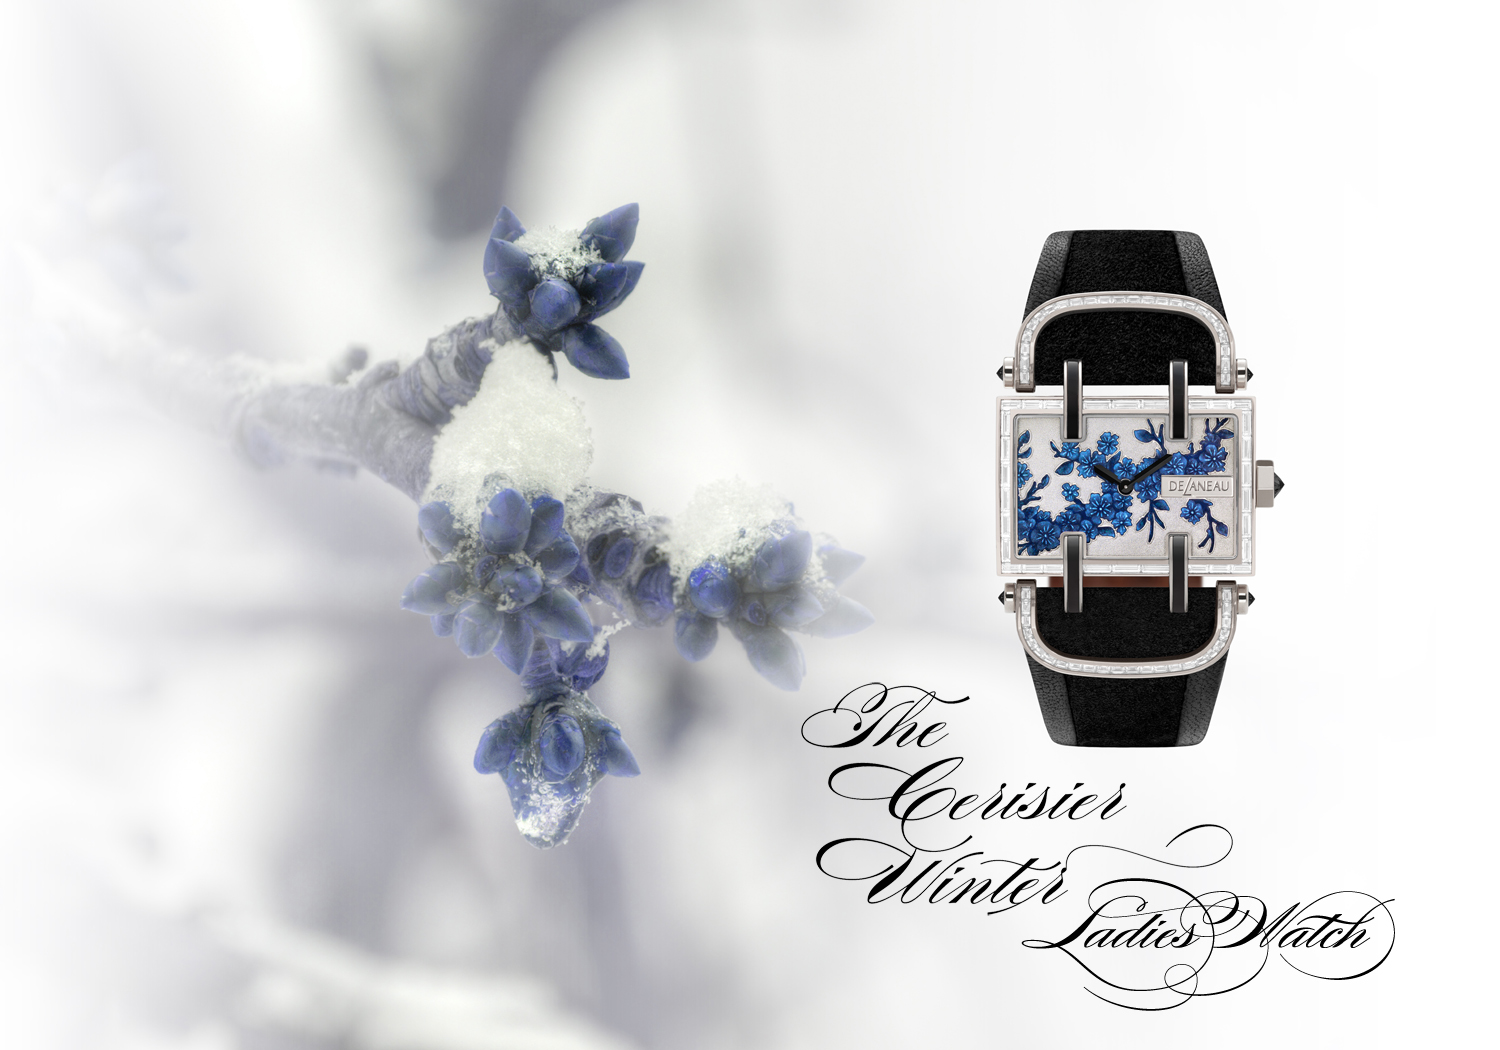 The Cerisier Collection par Delaneau